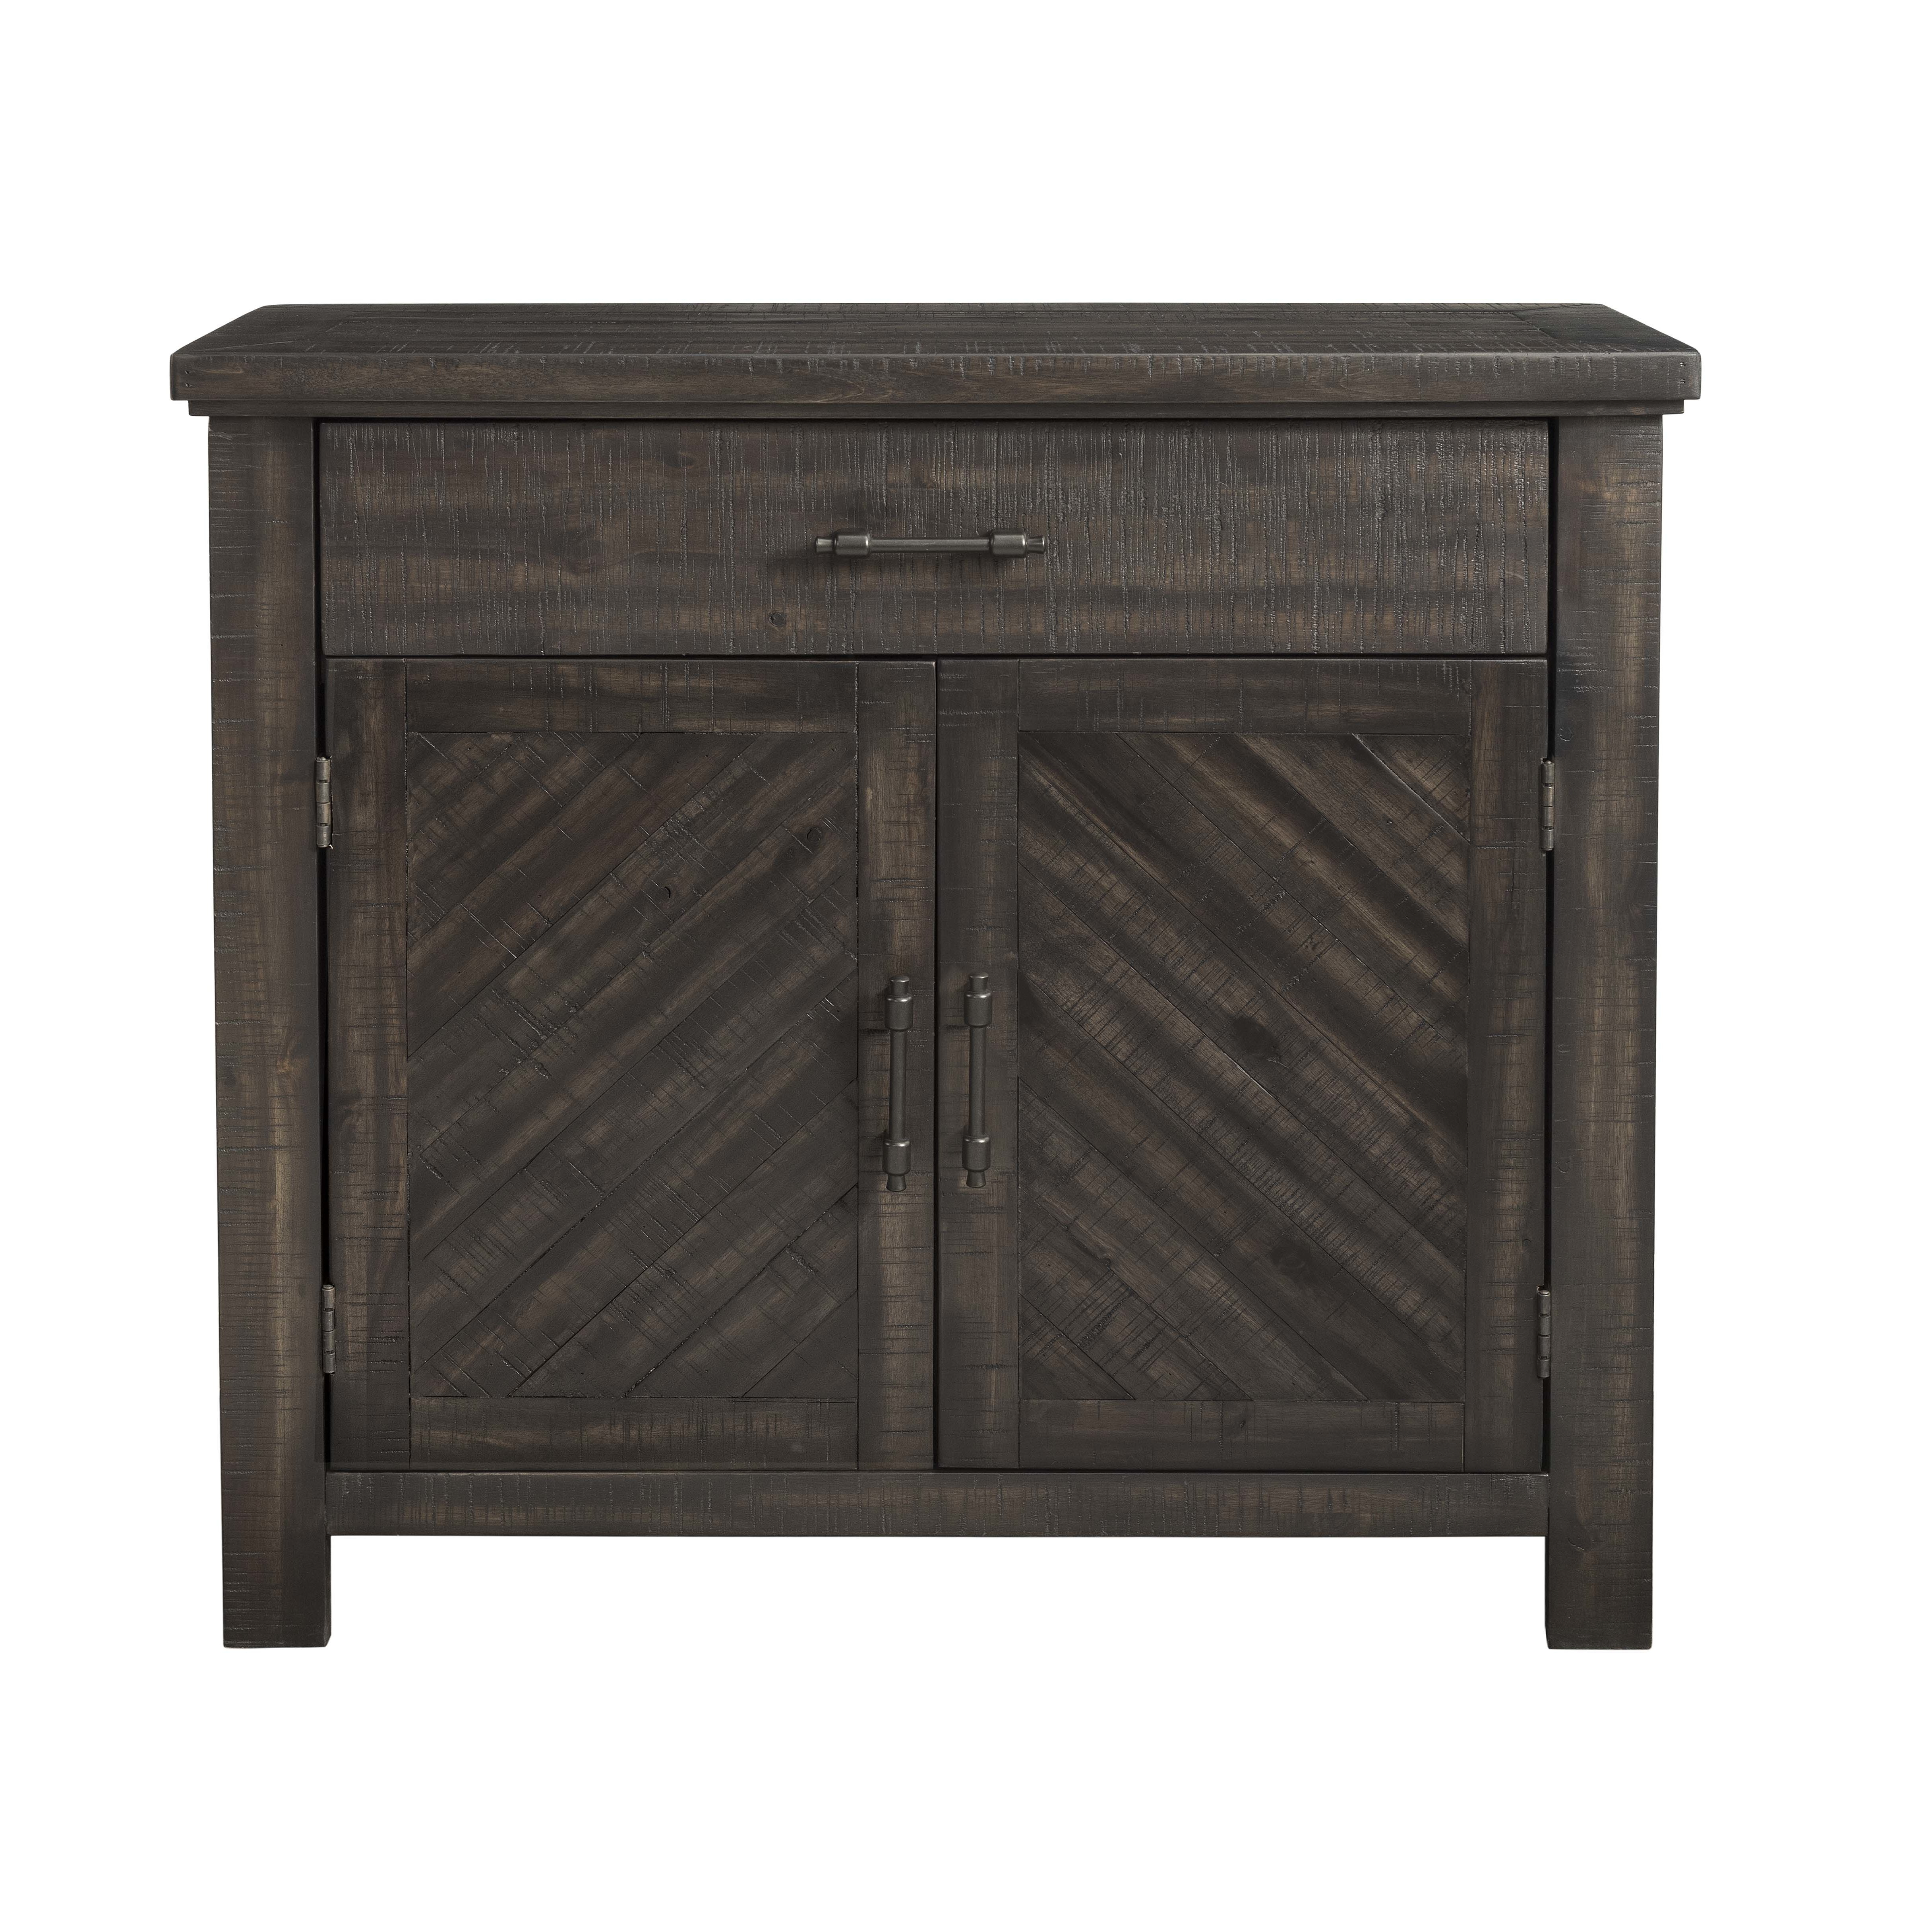 Wayfair In Burn Tan Finish 2 Door Sideboards (View 18 of 20)